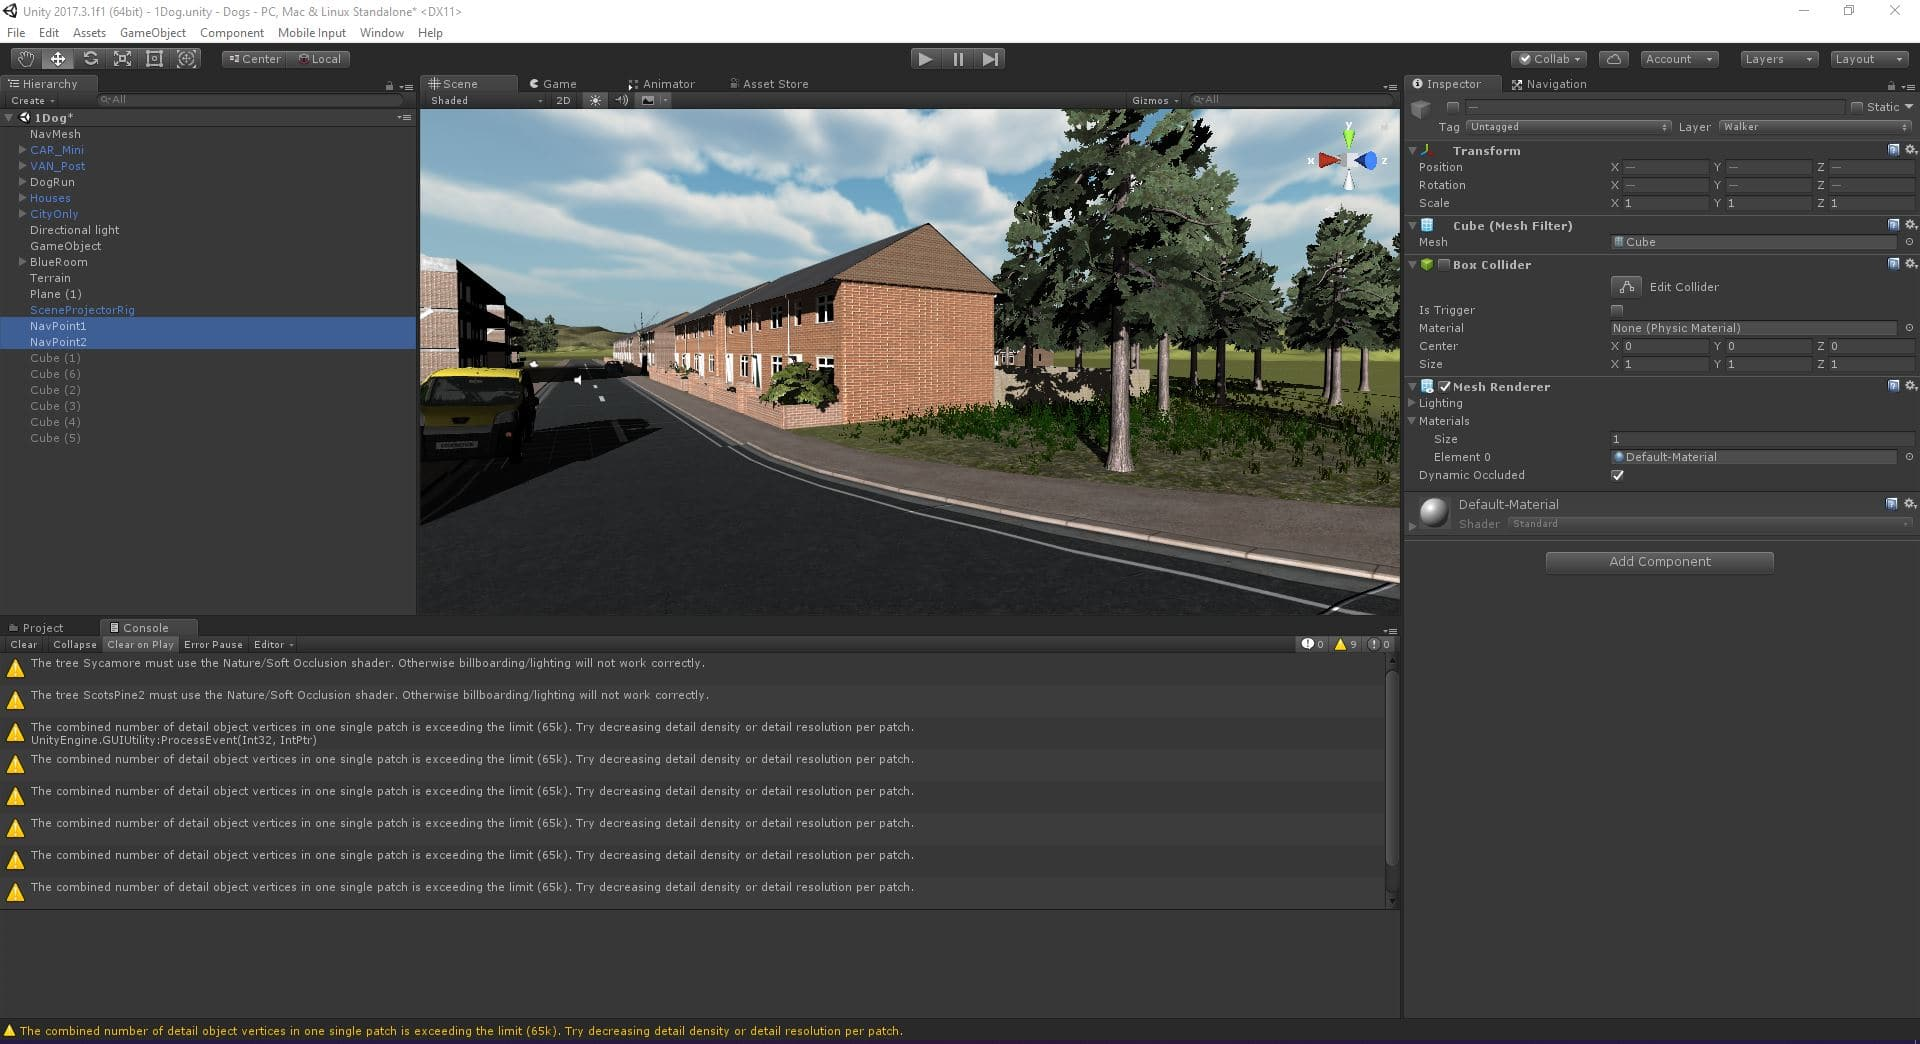 Screenshot of the Unity engine development tools open on a PC showing one of the Blue Room scenes.